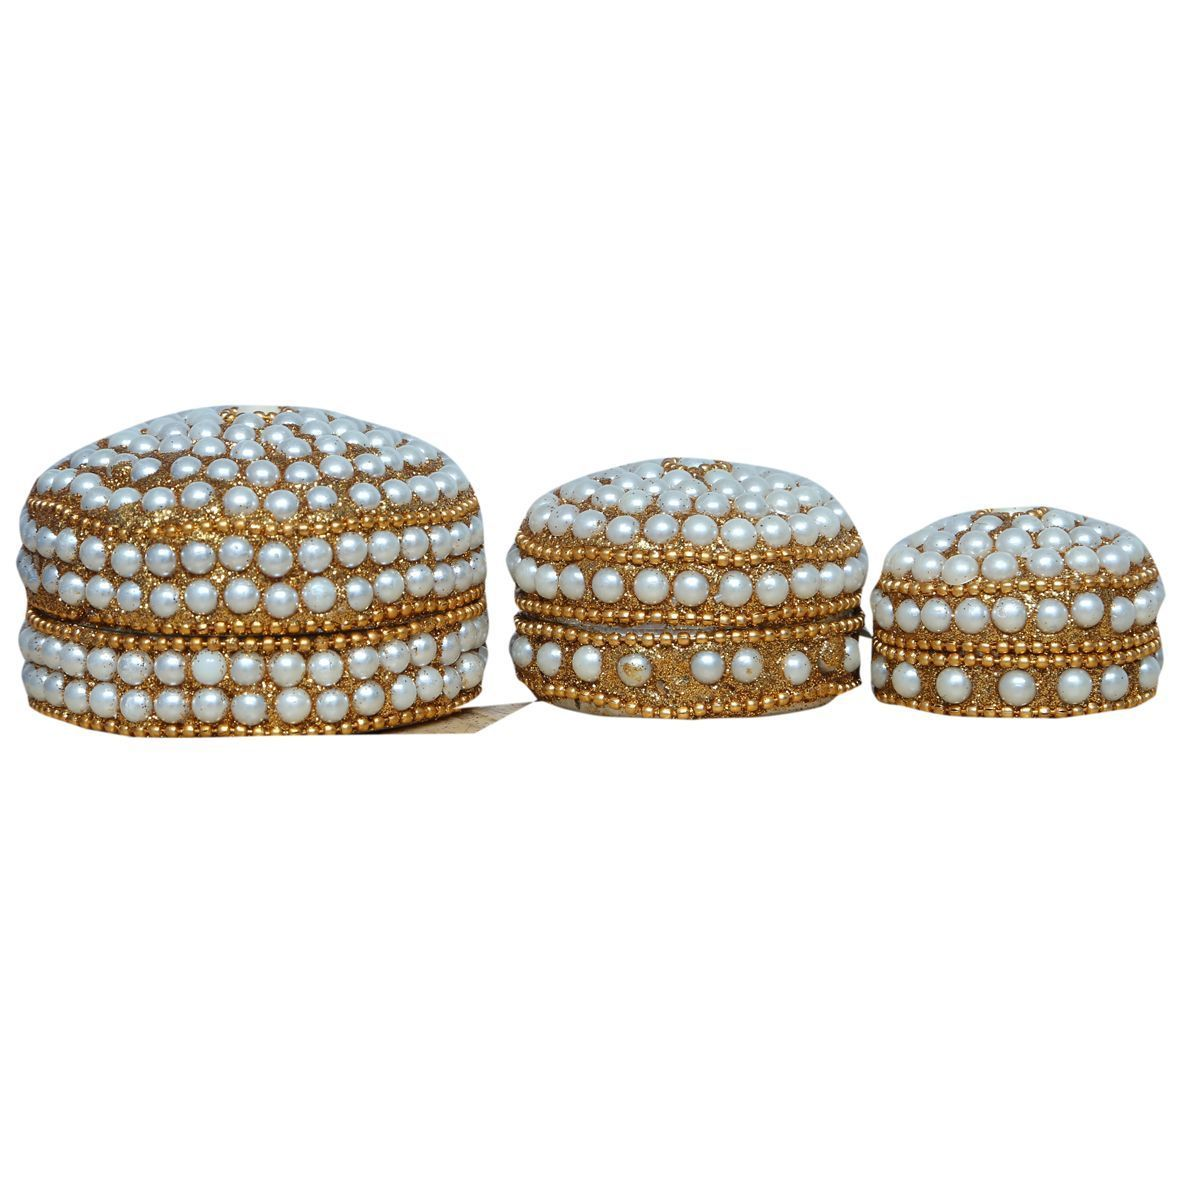 Kuber Industries™ Sindoor Dani Stone & Moti Beaded Jarkan Work|Silver Coin Box|Ethnic Dibbi Set|Jewellery Box|Ring & Earing Organiser Set of 3 pieces (White) Hand03